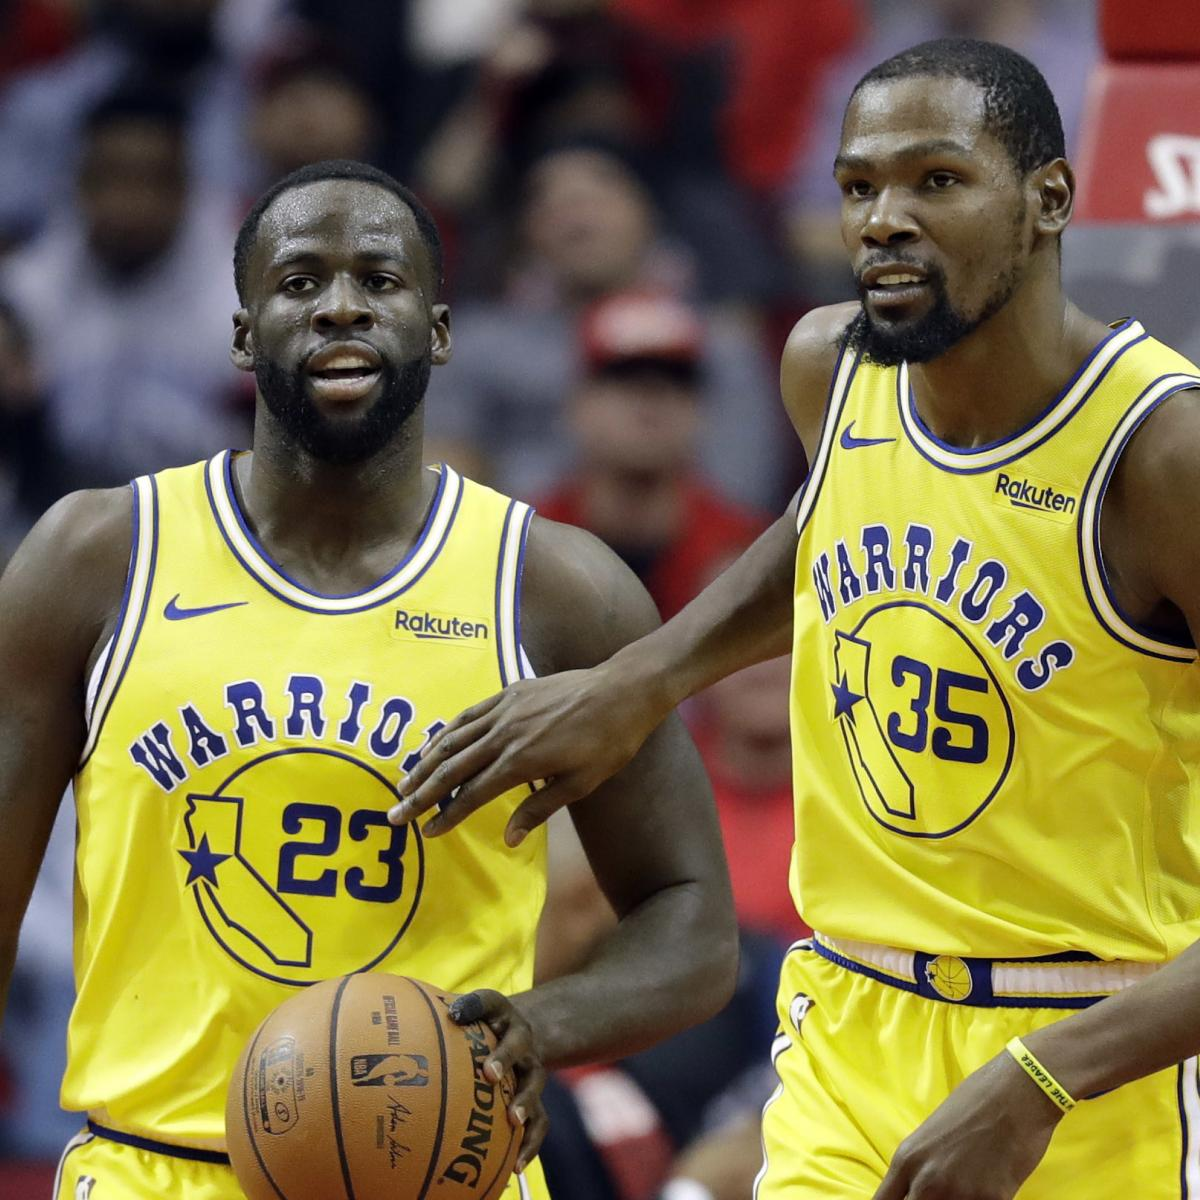 NBA Rumors: Latest Buzz on Kevin Durant's Future and Possible Kyle Korver Trade